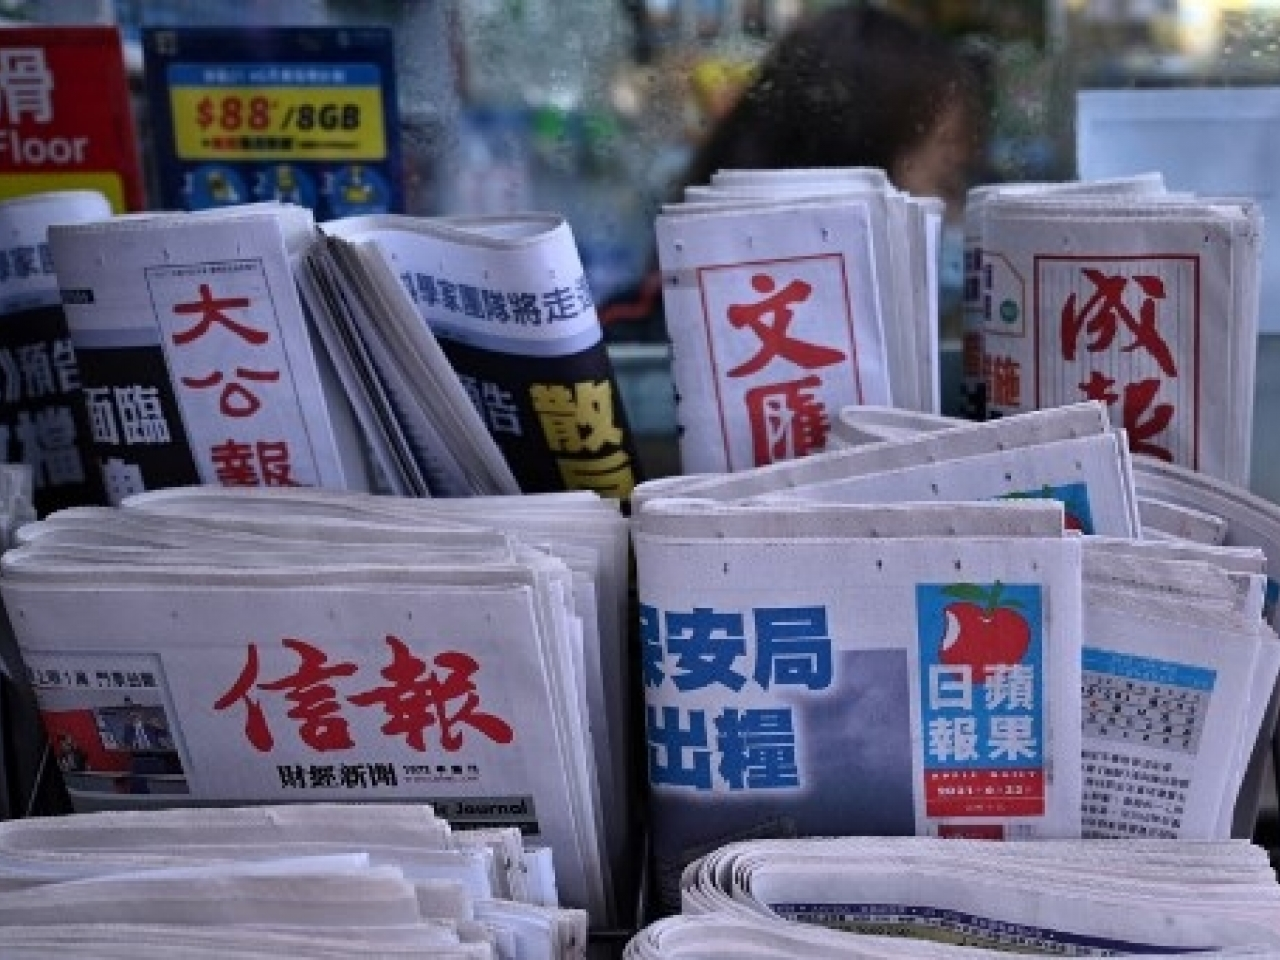 The pro-democracy paper is expected to fold in the coming days after authorities froze its funds under the national security law. Photo: AFP